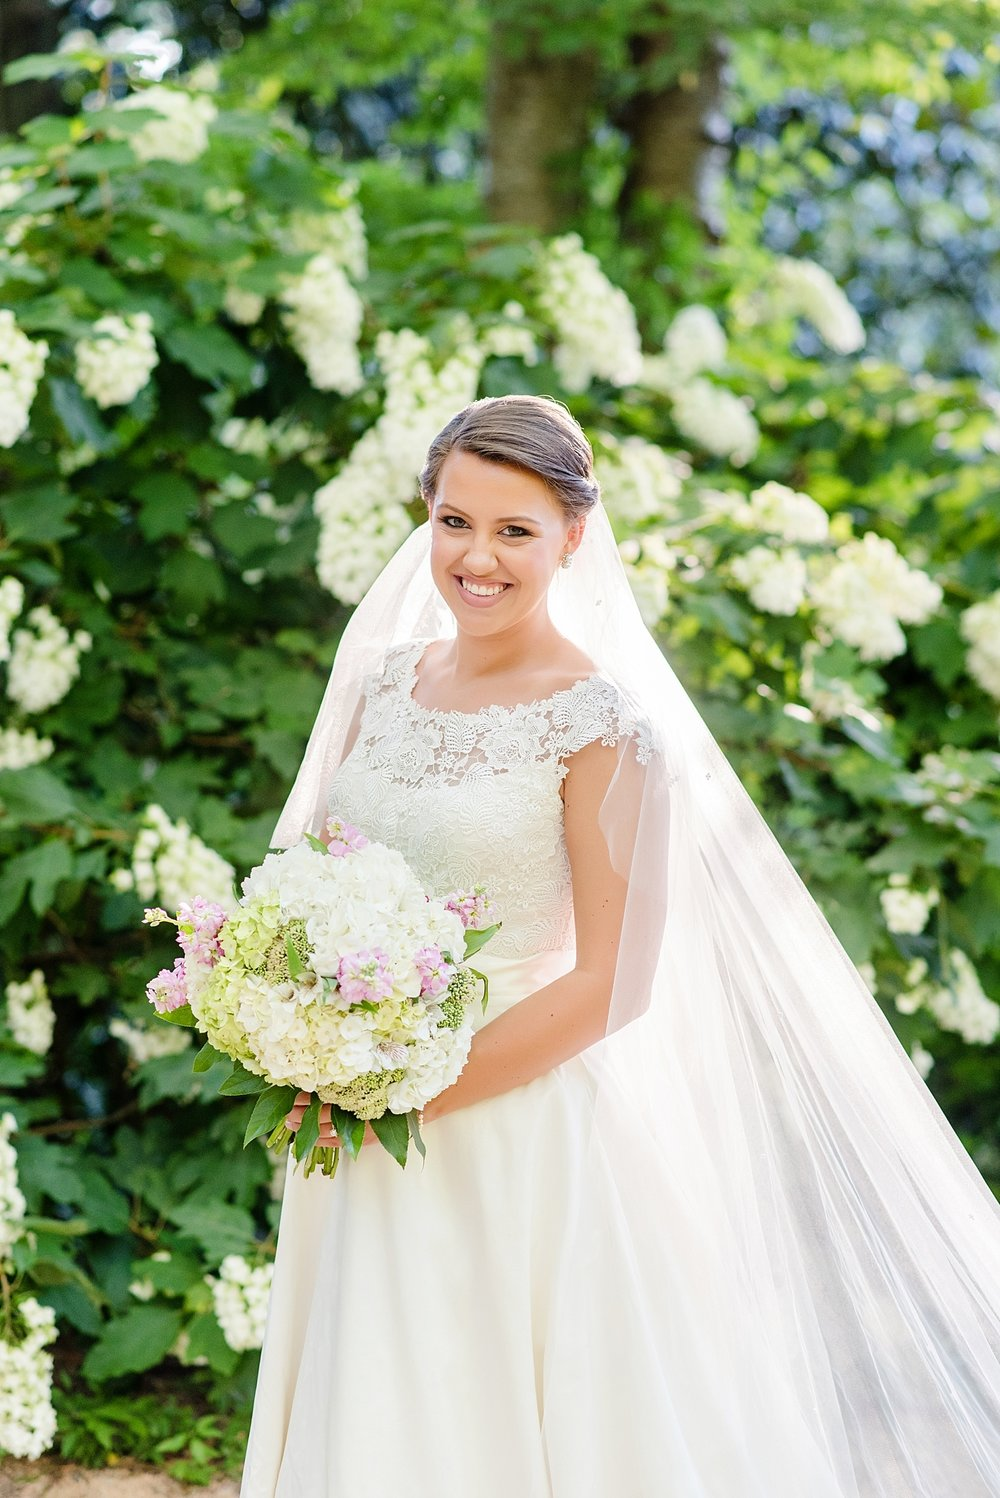 duke_gardens_bridal_portrait_0250.jpg